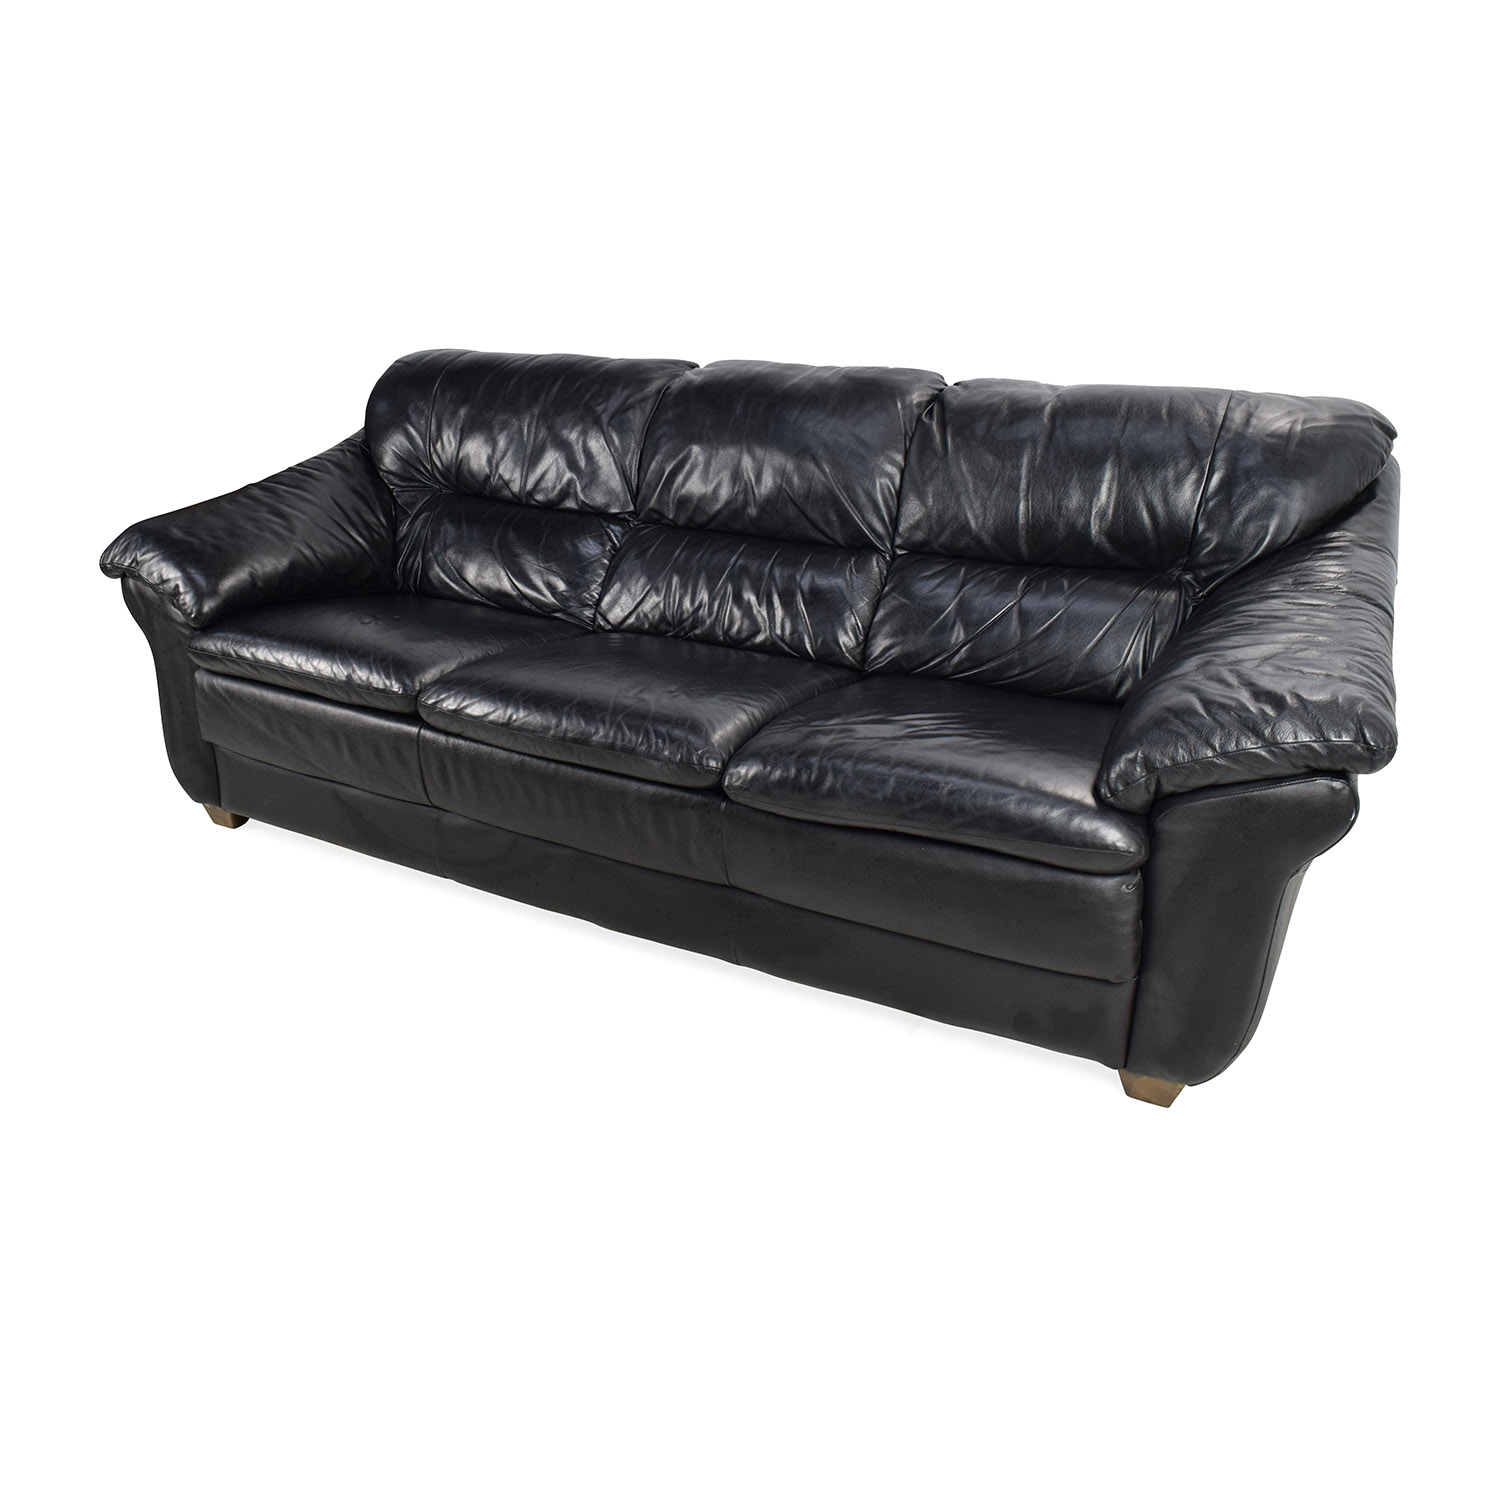 79% OFF Natuzzi Natuzzi Italian Black Leather Sofa Sofas